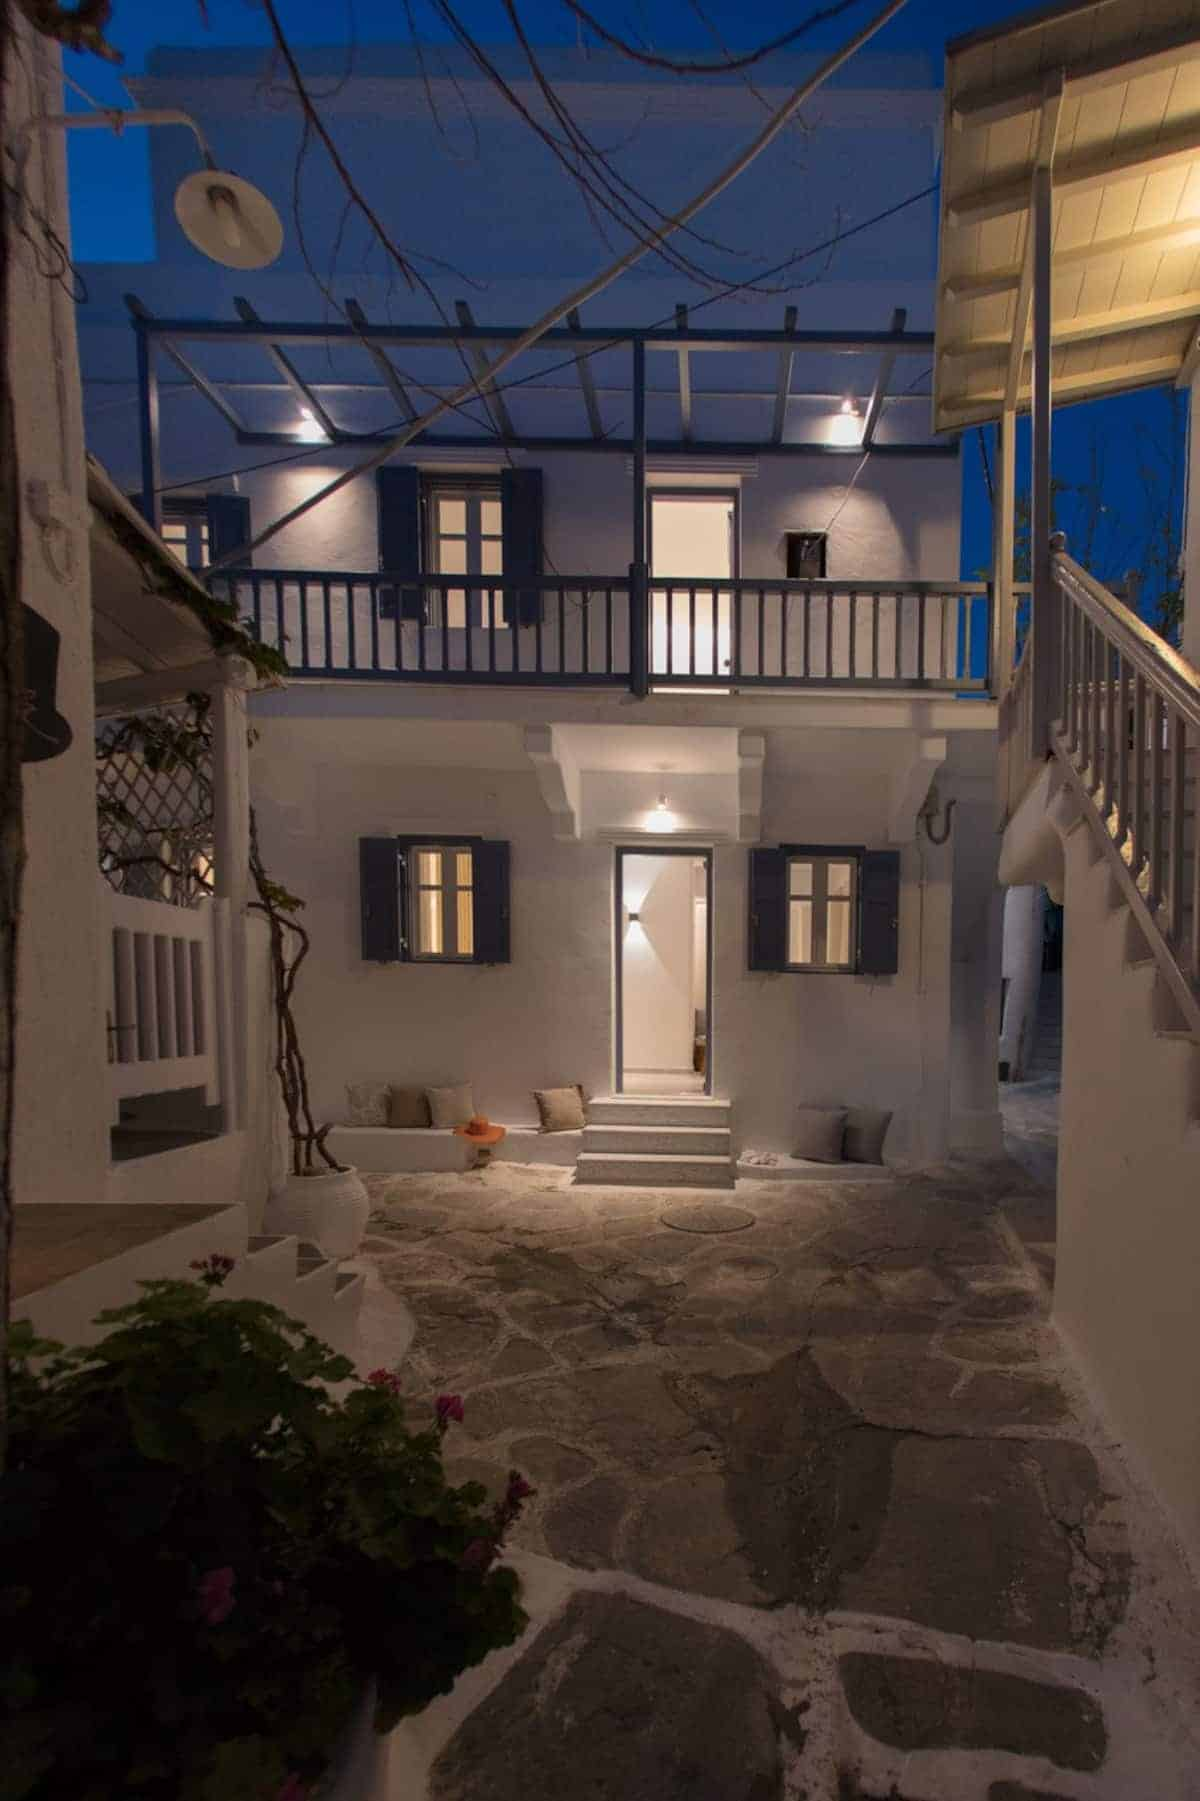 Image of Airbnb rental in Mykonos, Greece